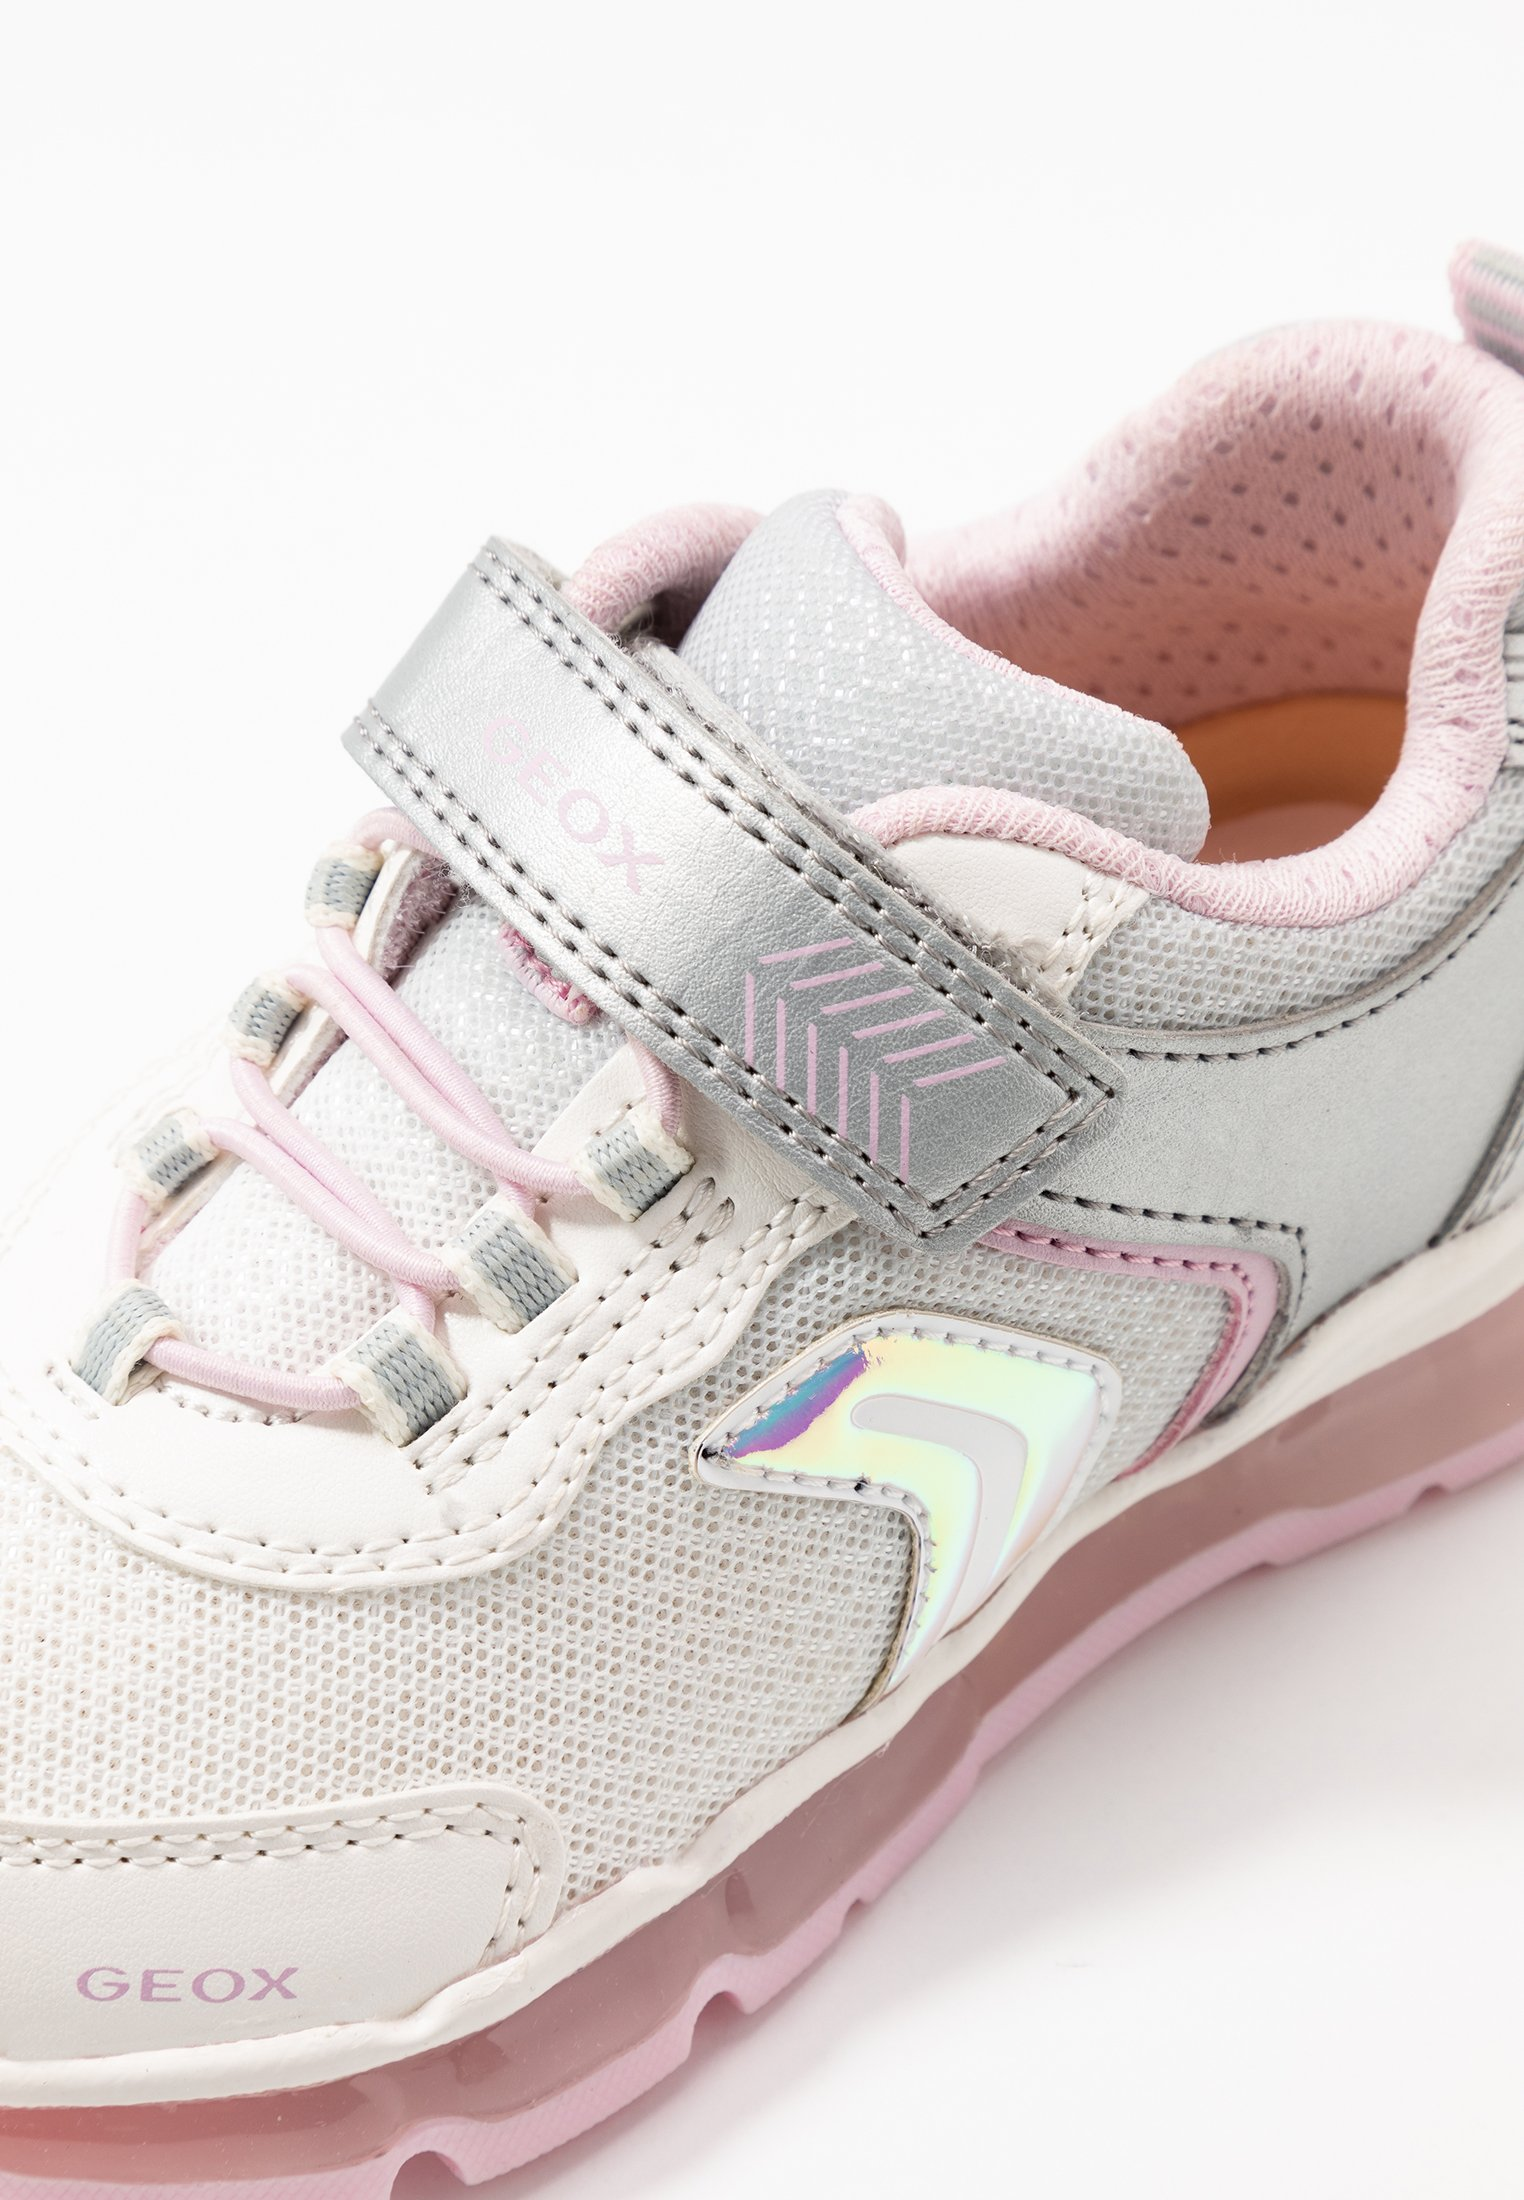 Geox GIRL - Sneakers - silver/white